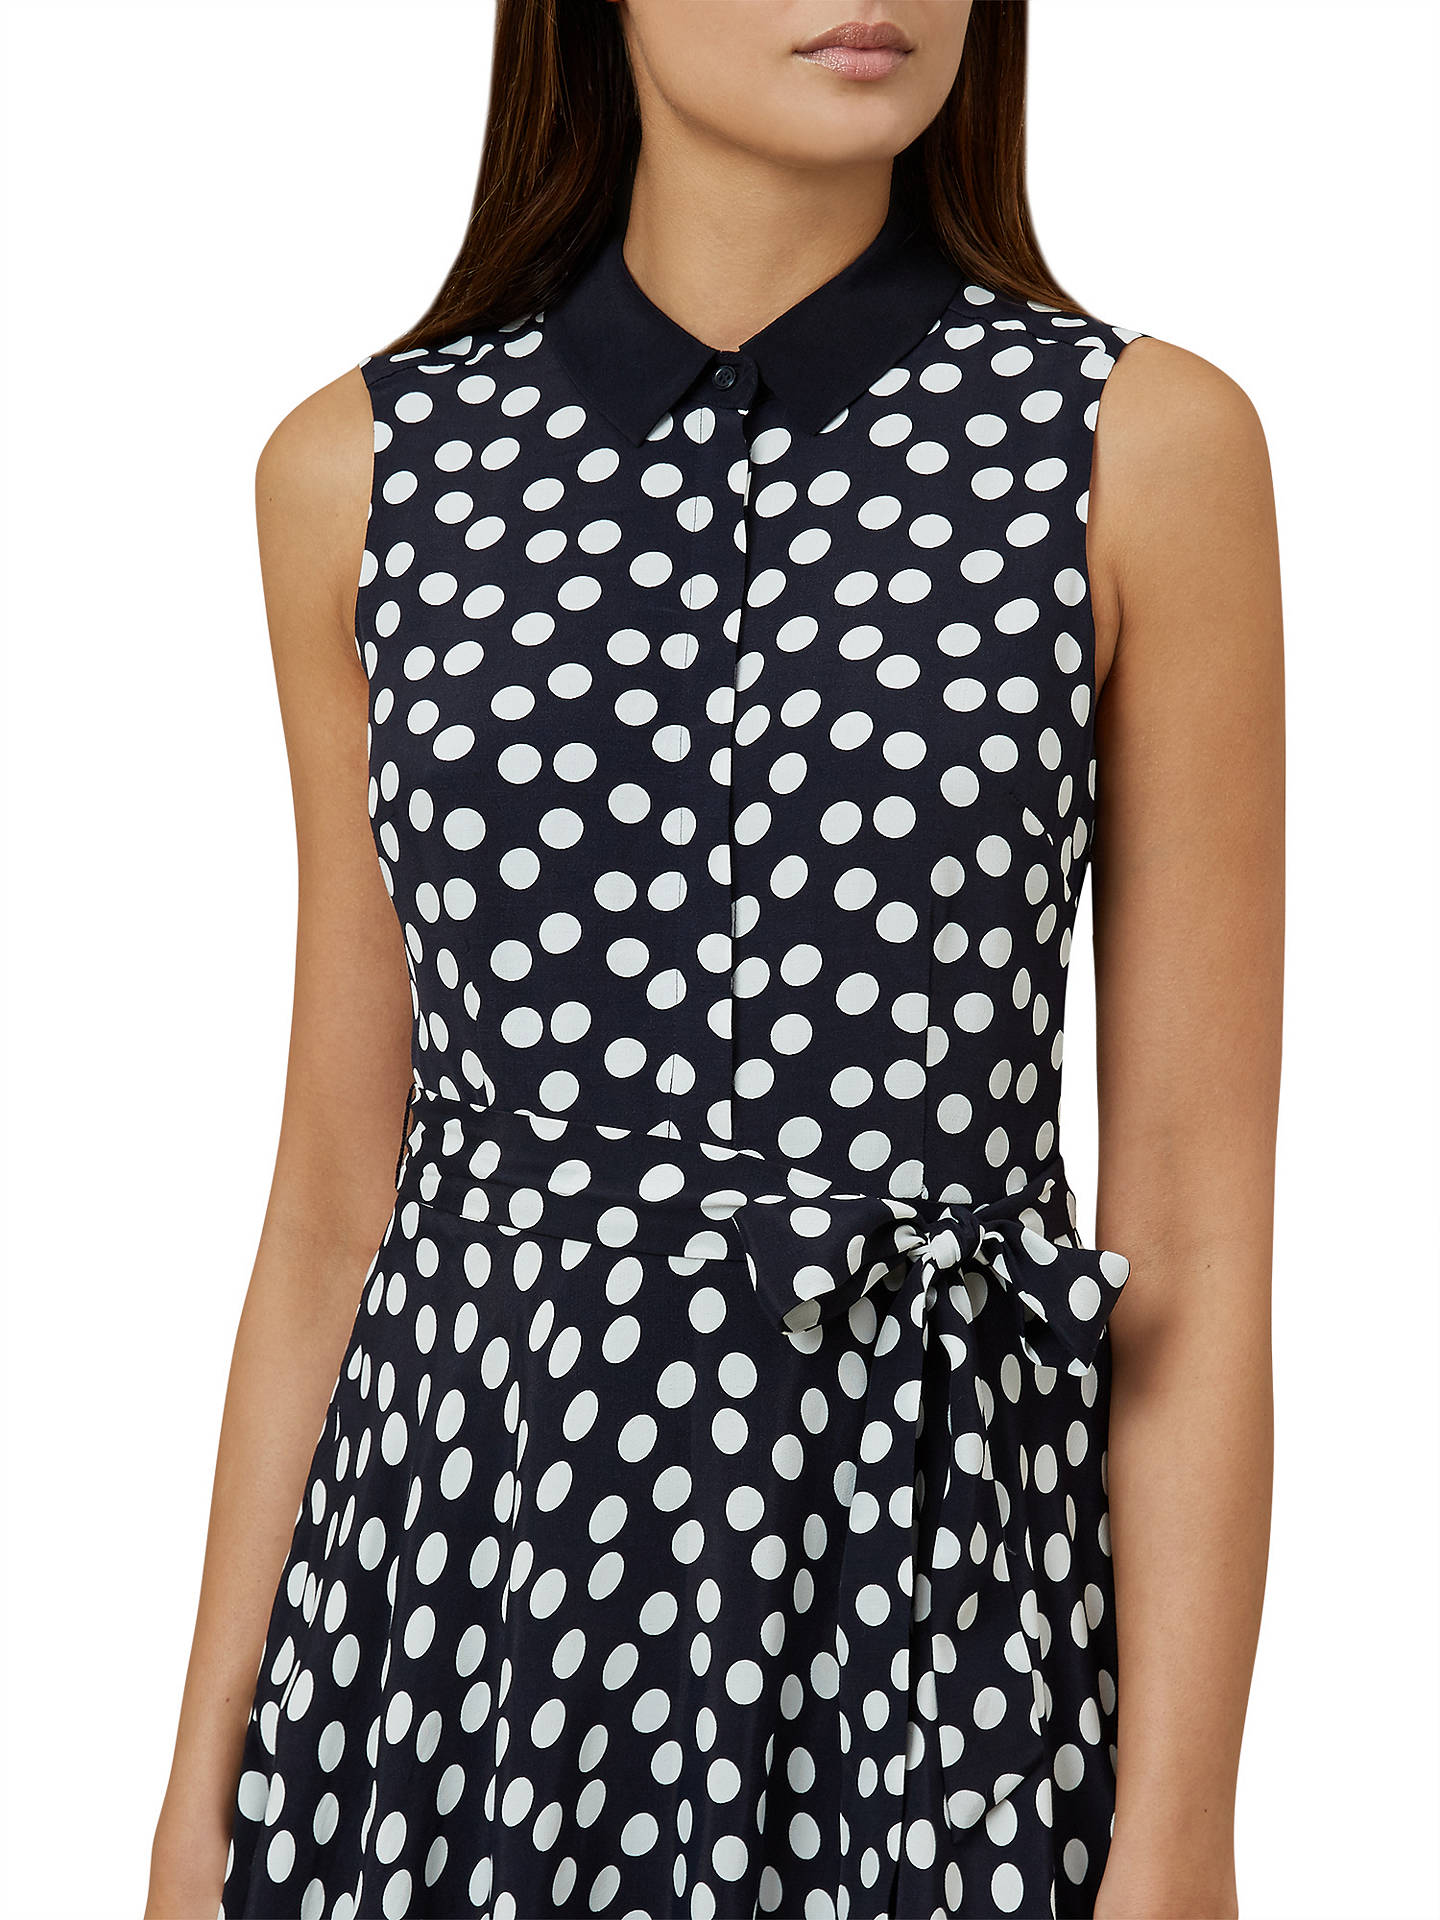 BuyHobbs Belinda Spot Dress, Navy/Ivory, 10 Online at johnlewis.com